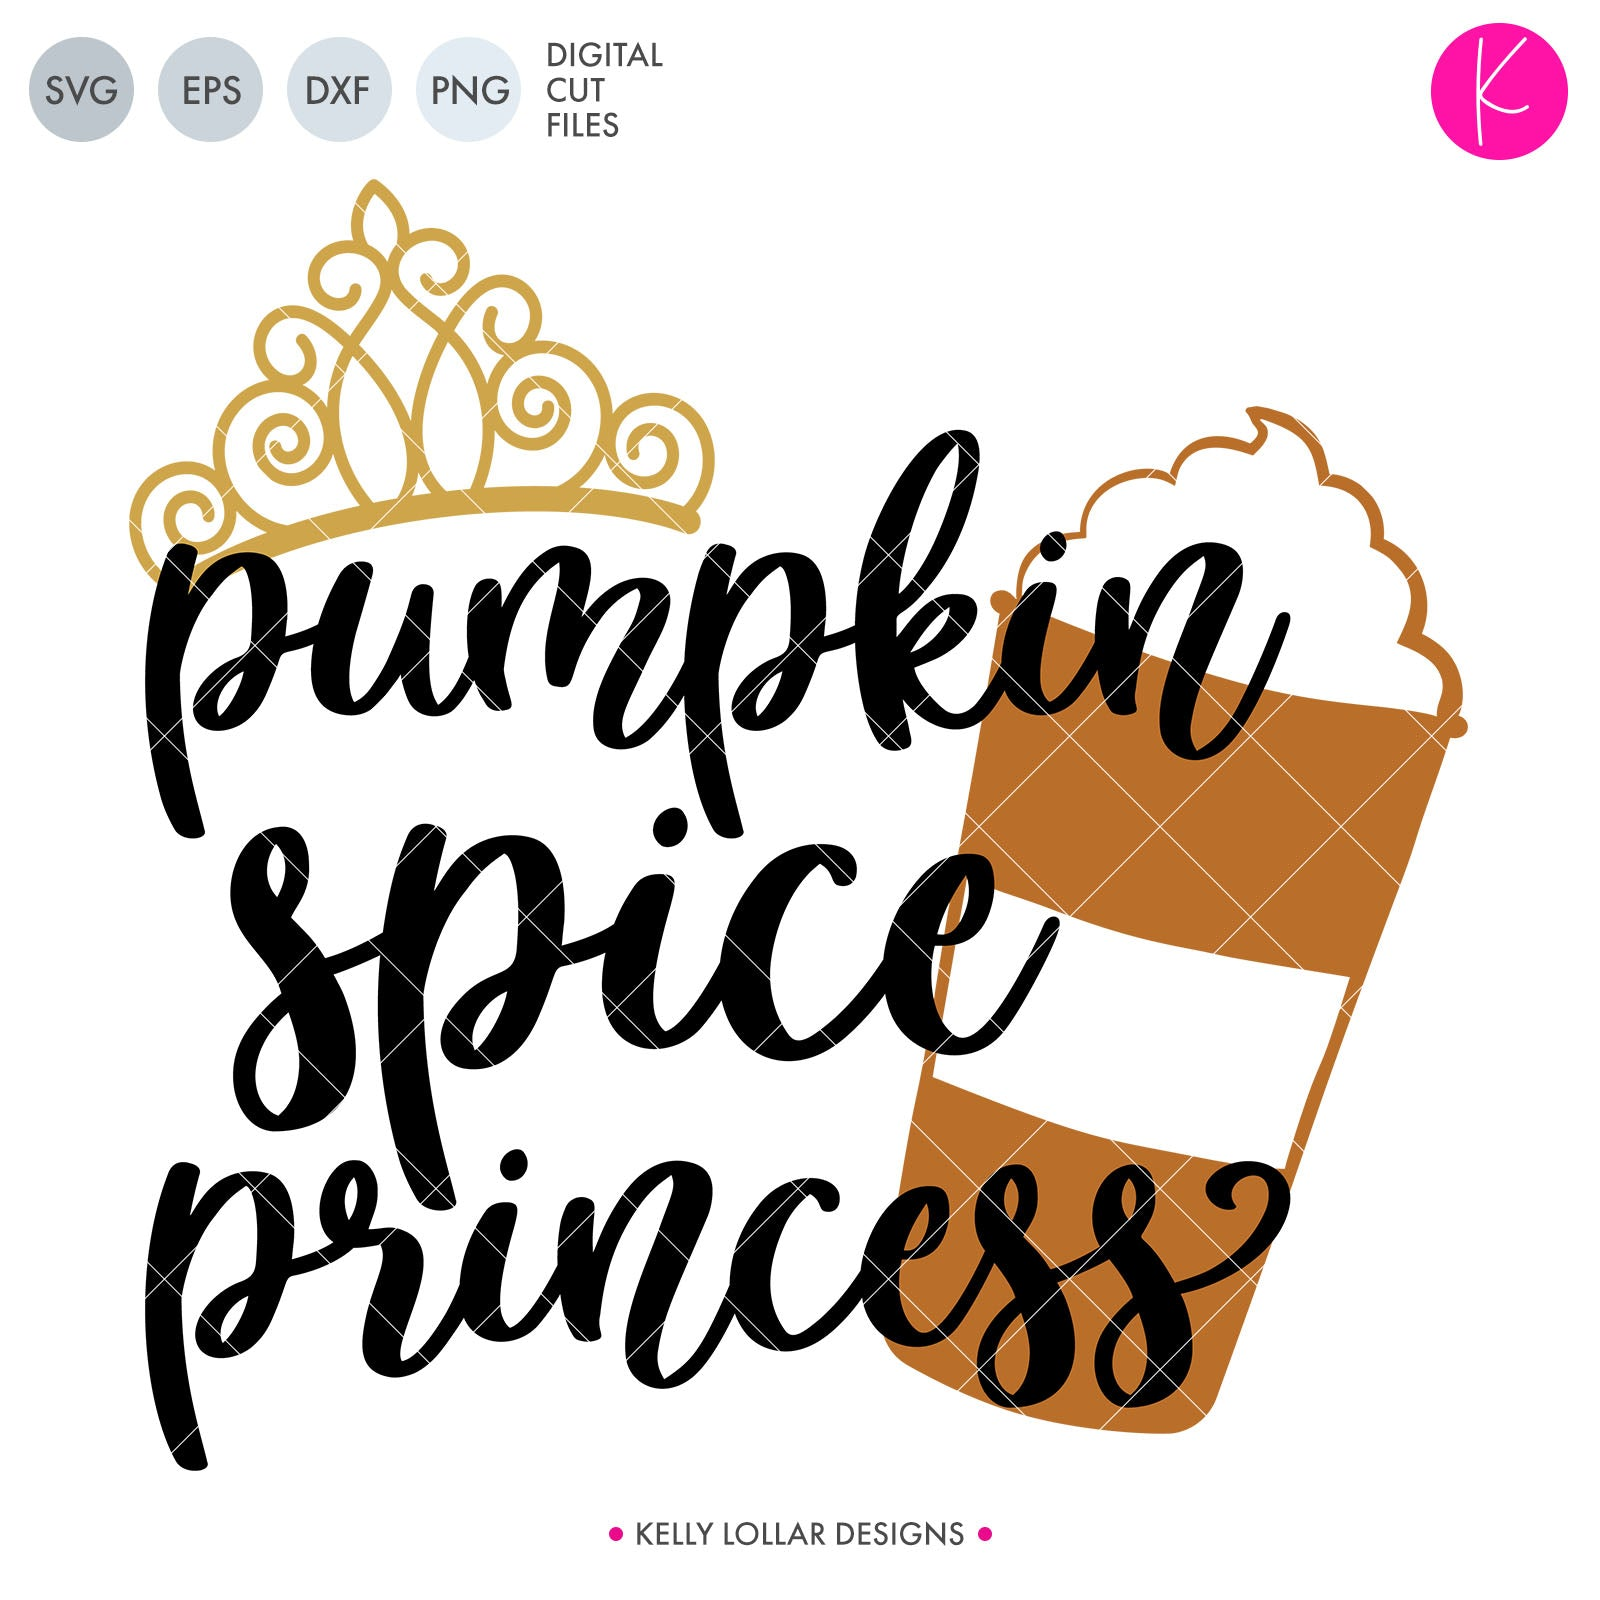 Pumpkin Spice Queen and Princess | SVG DXF EPS PNG Cut Files Fall Quote with Pumpkin Spice Latte and Crown for Shirts | SVG DXF EPS PNG Cut Files Oooo it's pumpkin spice season again!!! Celebrate with a cute new mommy and